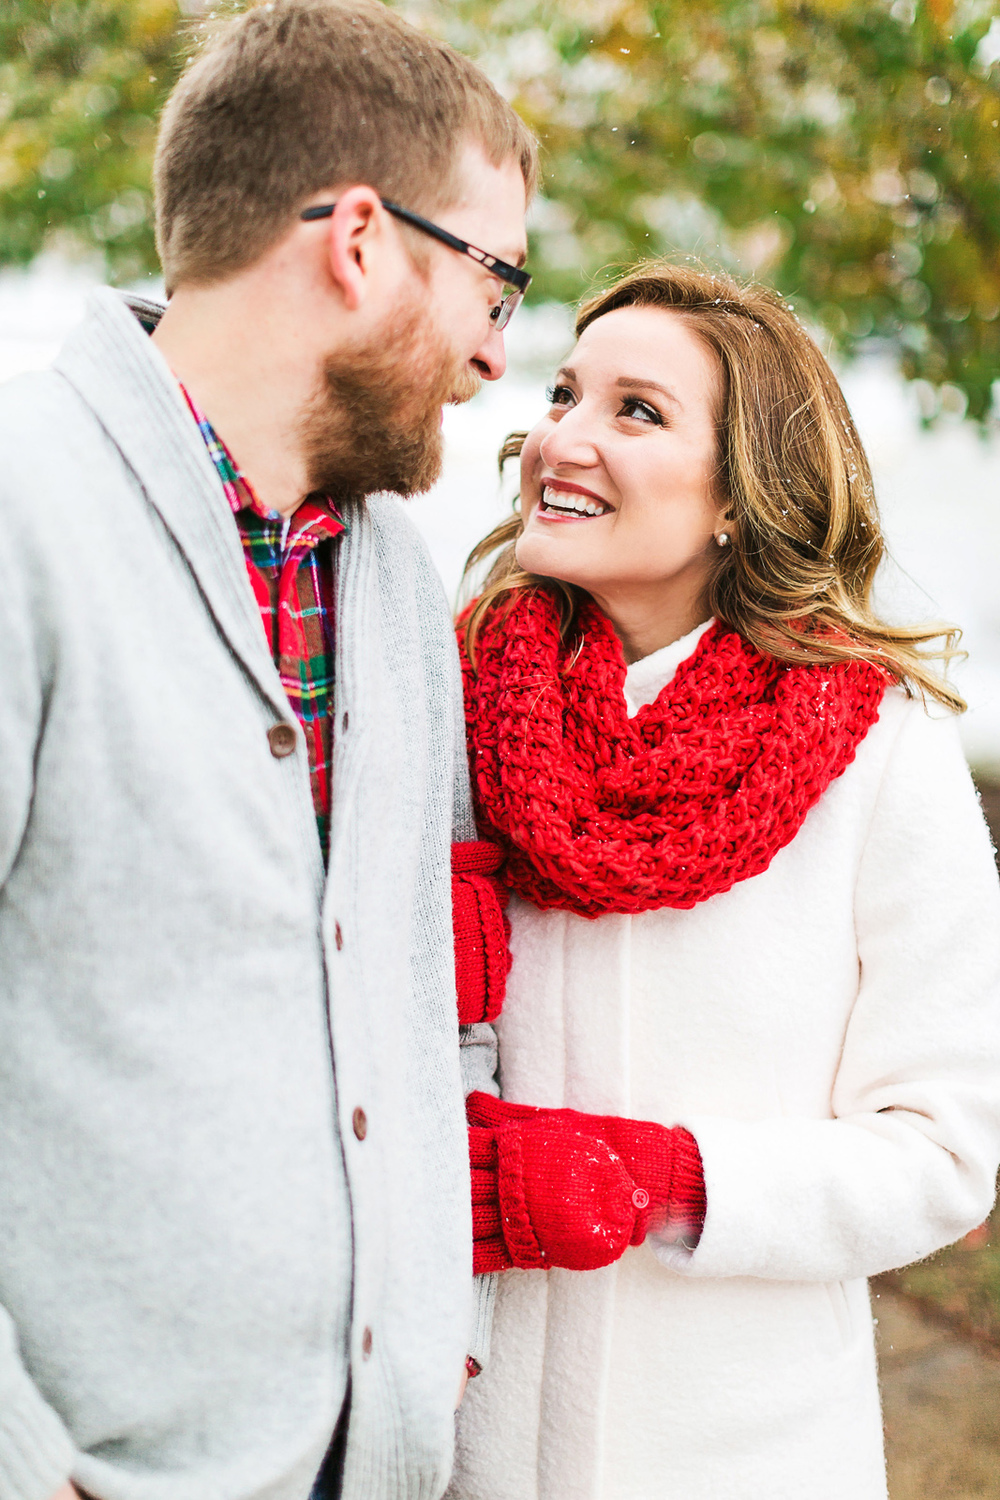 Oldani-Photography-St-Louis-Forest-Park-Engagement-Photos-Snow_20141116_15511874.jpg